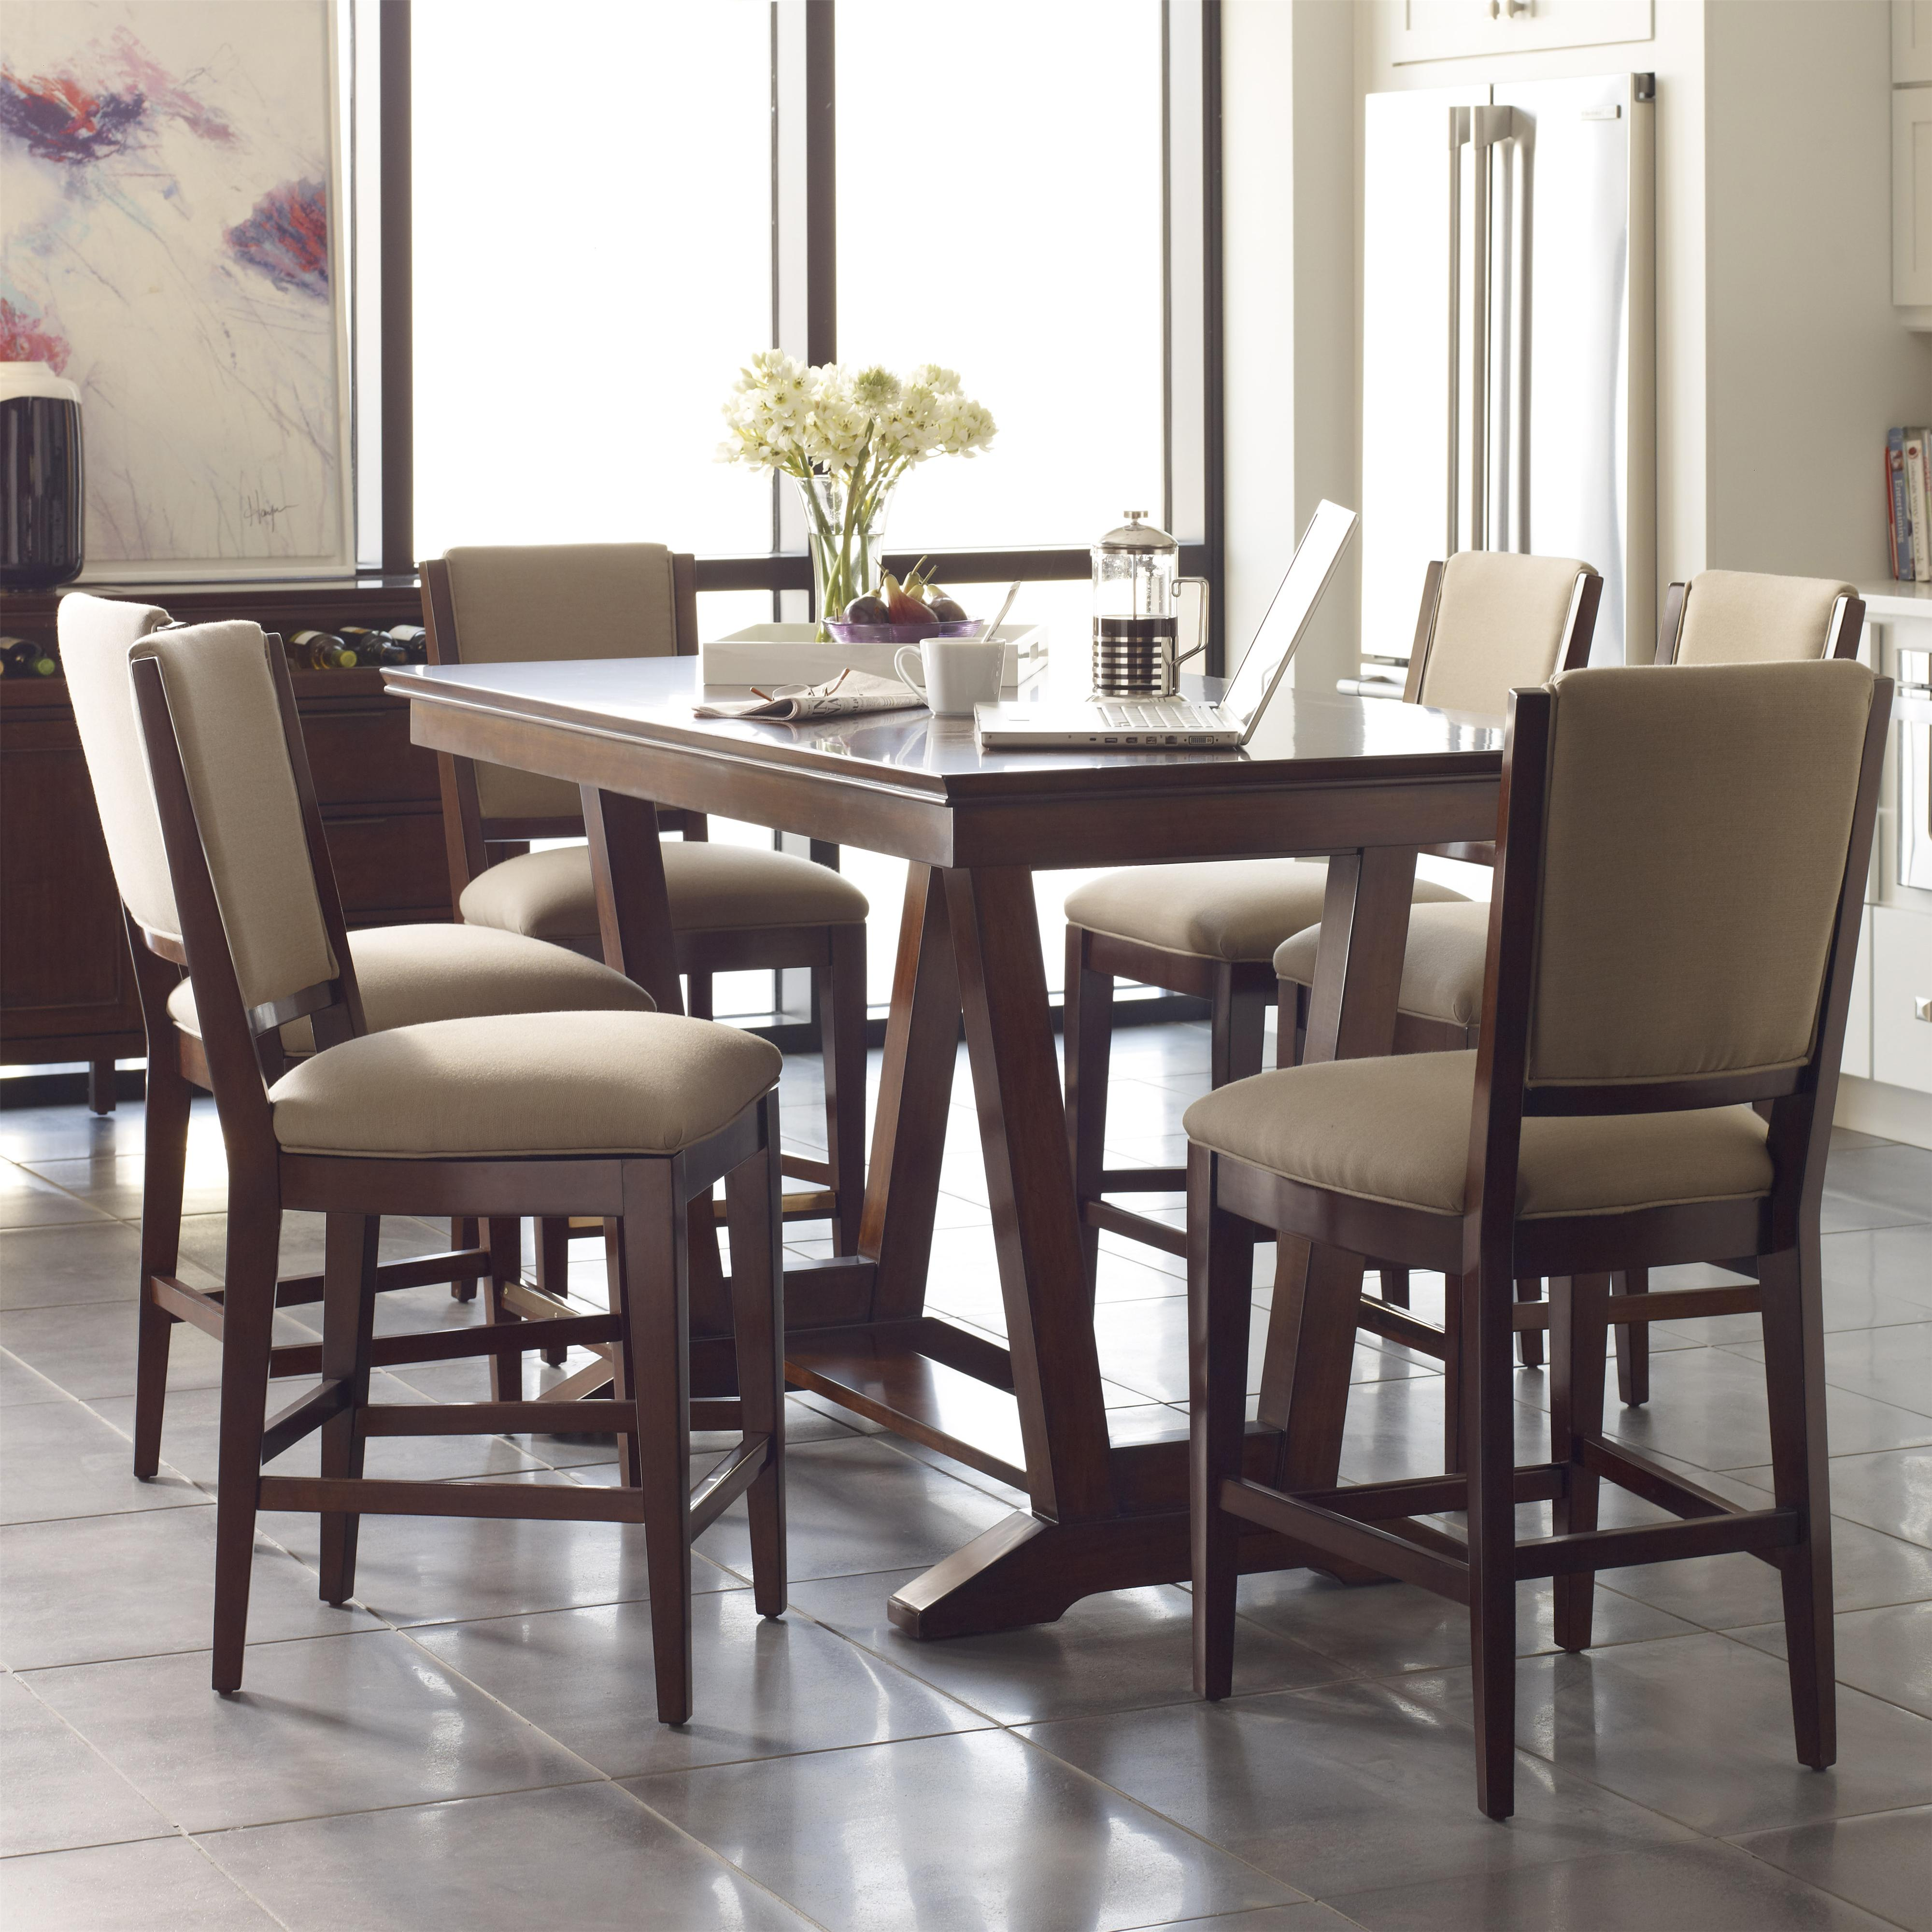 7 Pc Counter Height Dining Set & Seven Piece Counter Height Dining Set with Upholstered Stools by ...